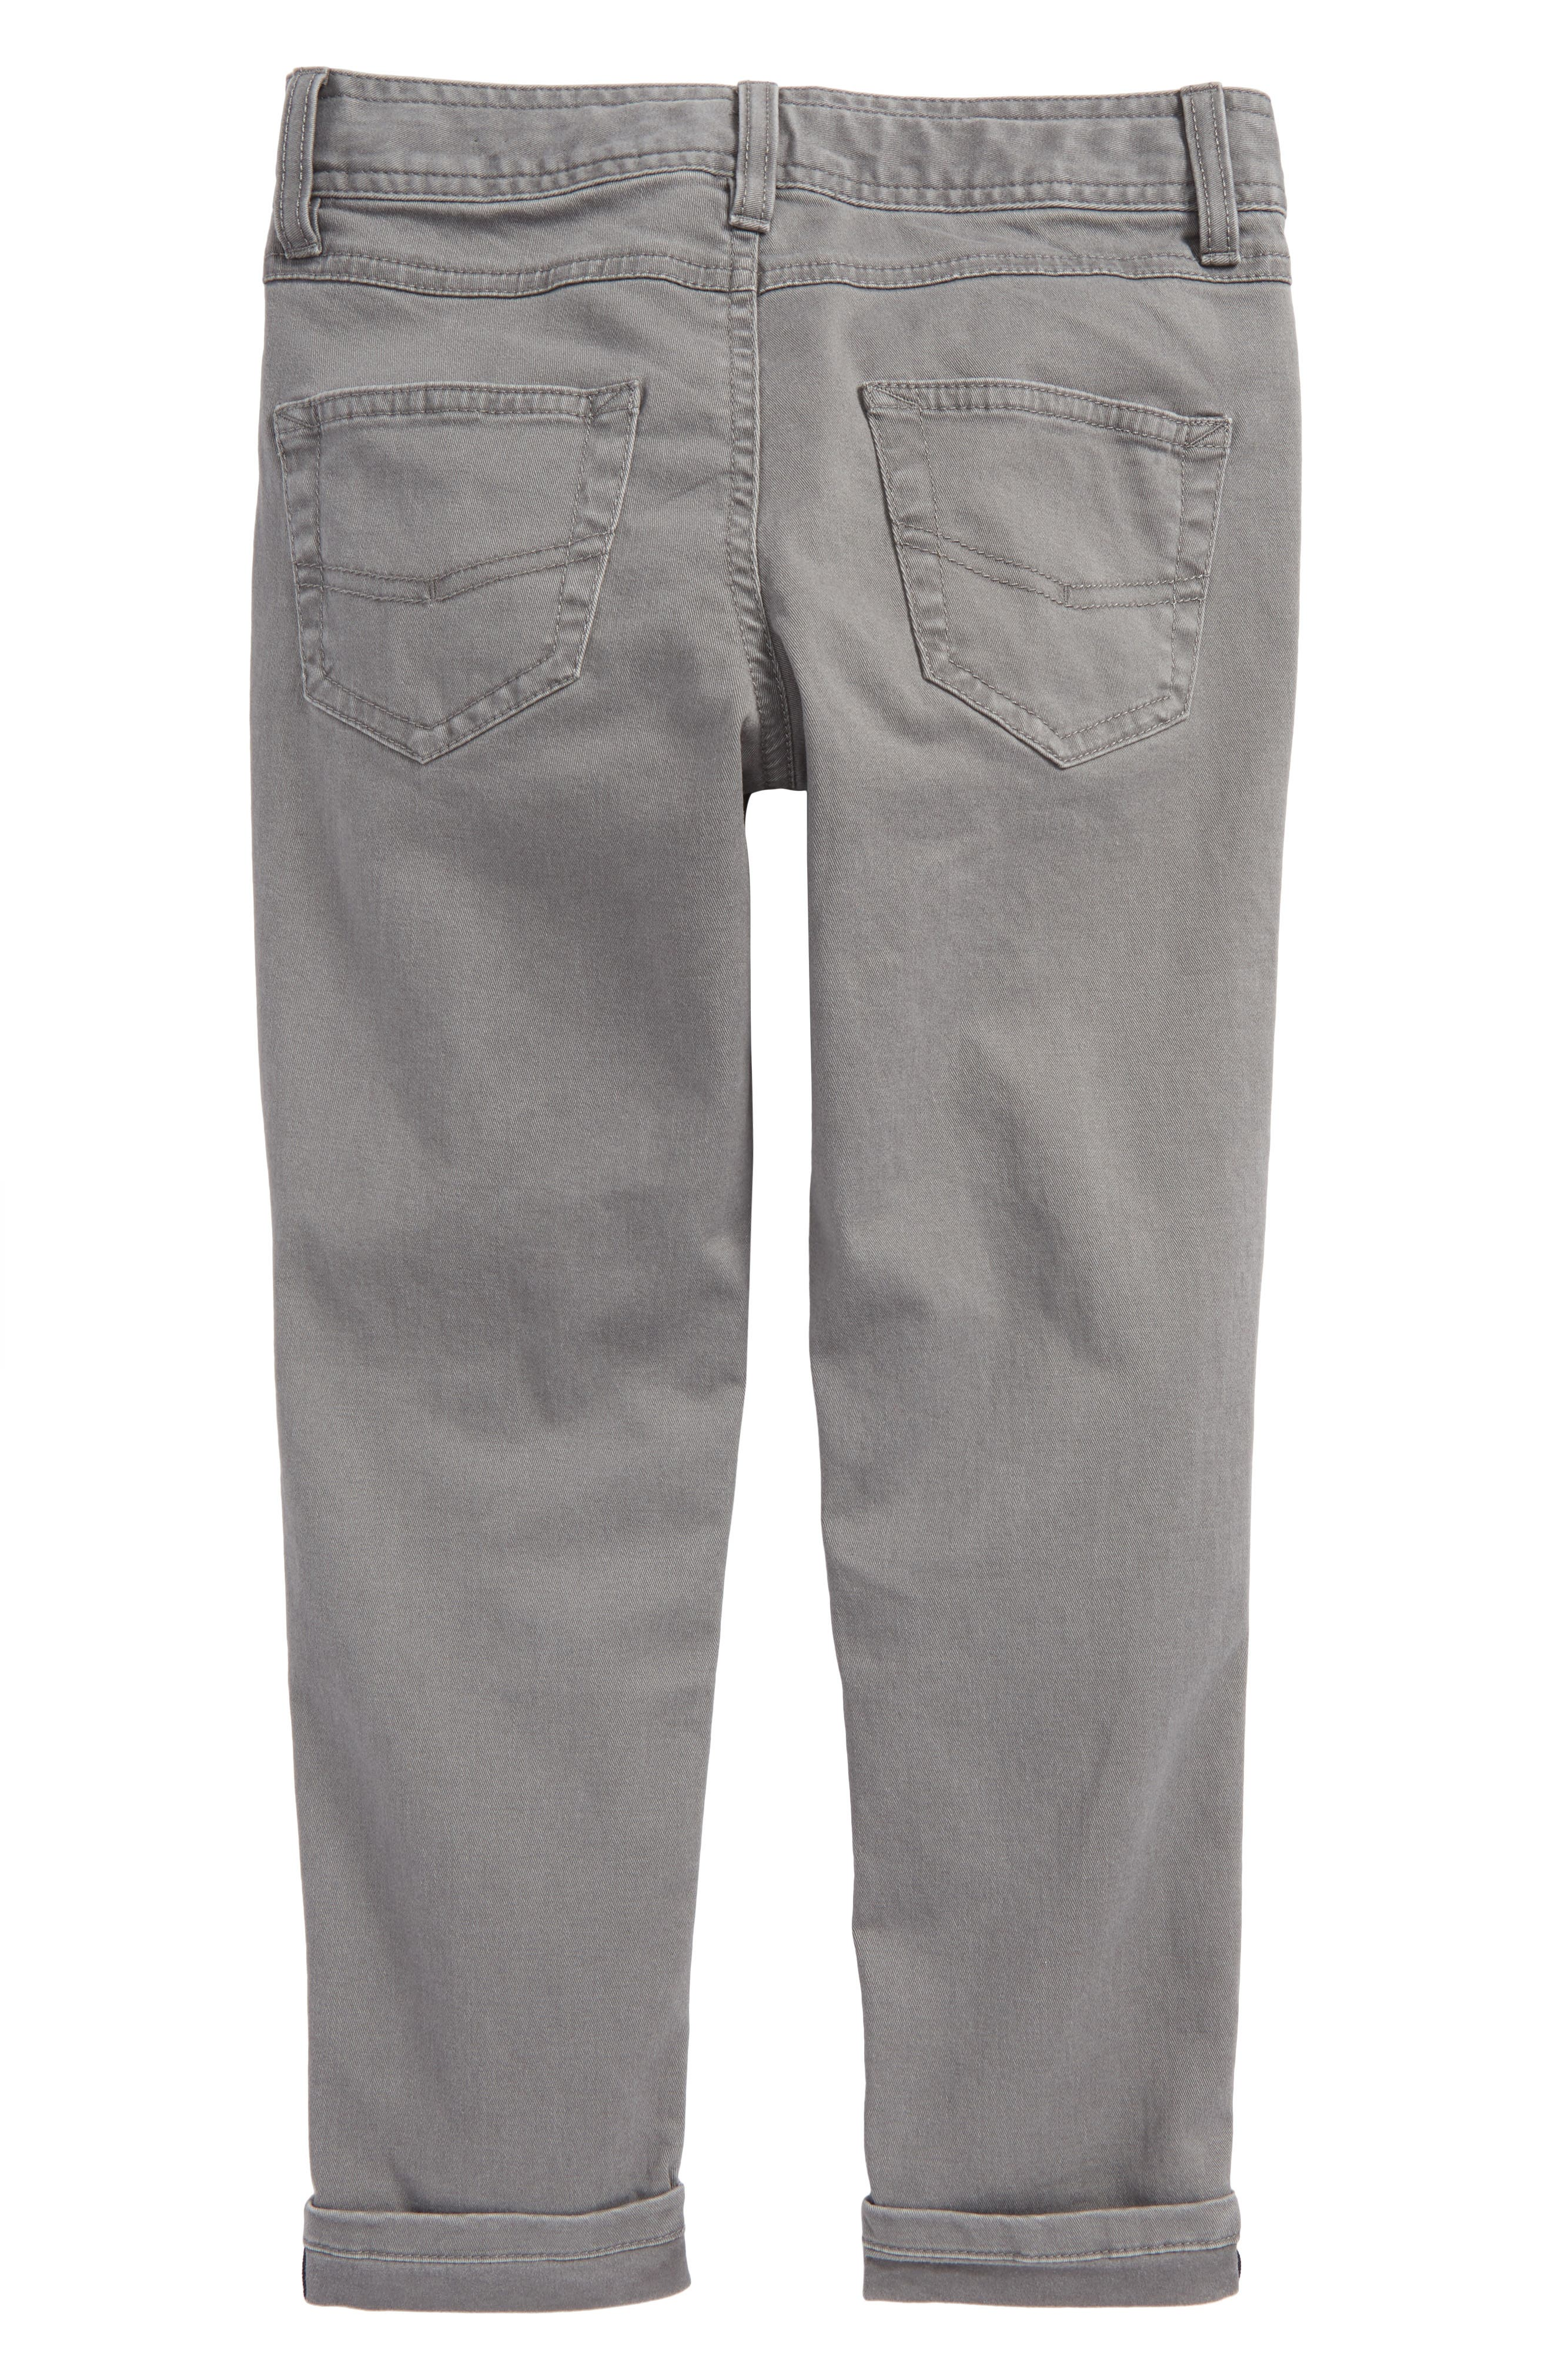 Twill Pants,                         Main,                         color, 021